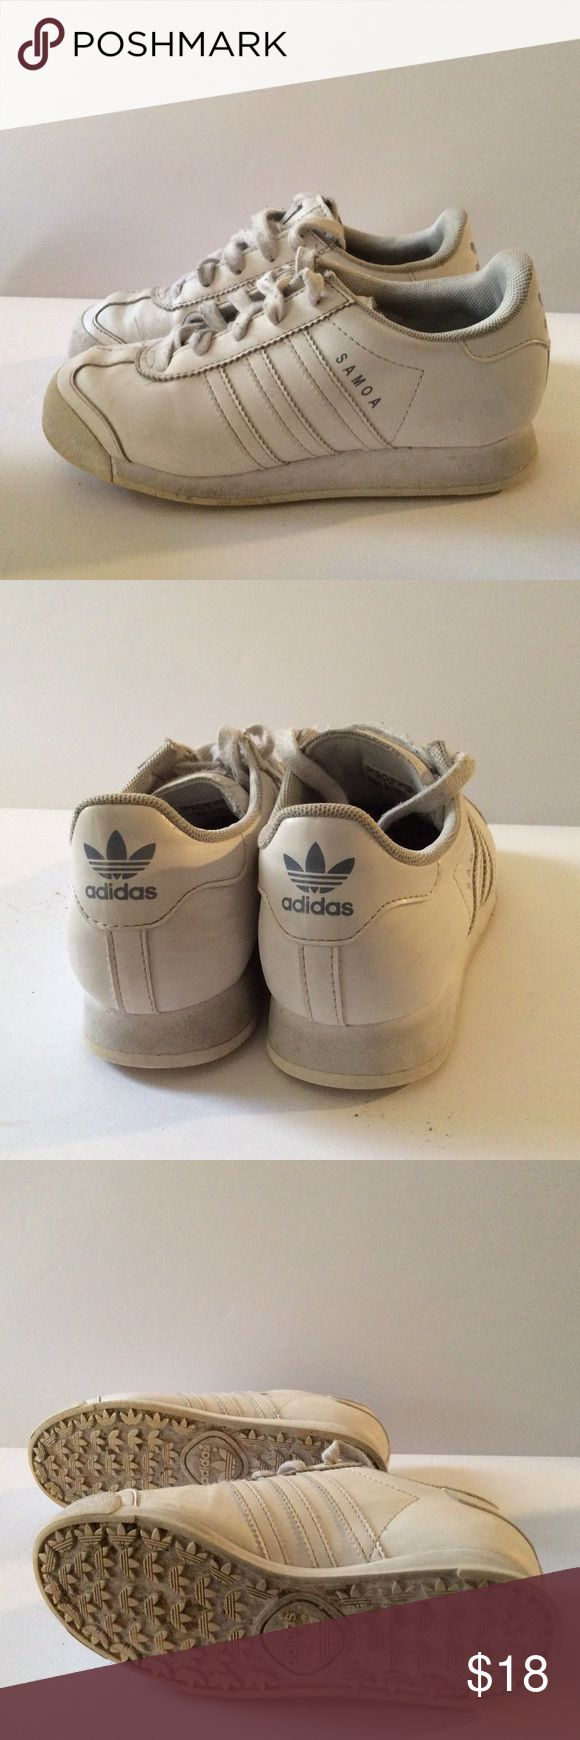 ADIDAS Original 2014 SAMOA  White Sneakers Size 1 Make these yours! 